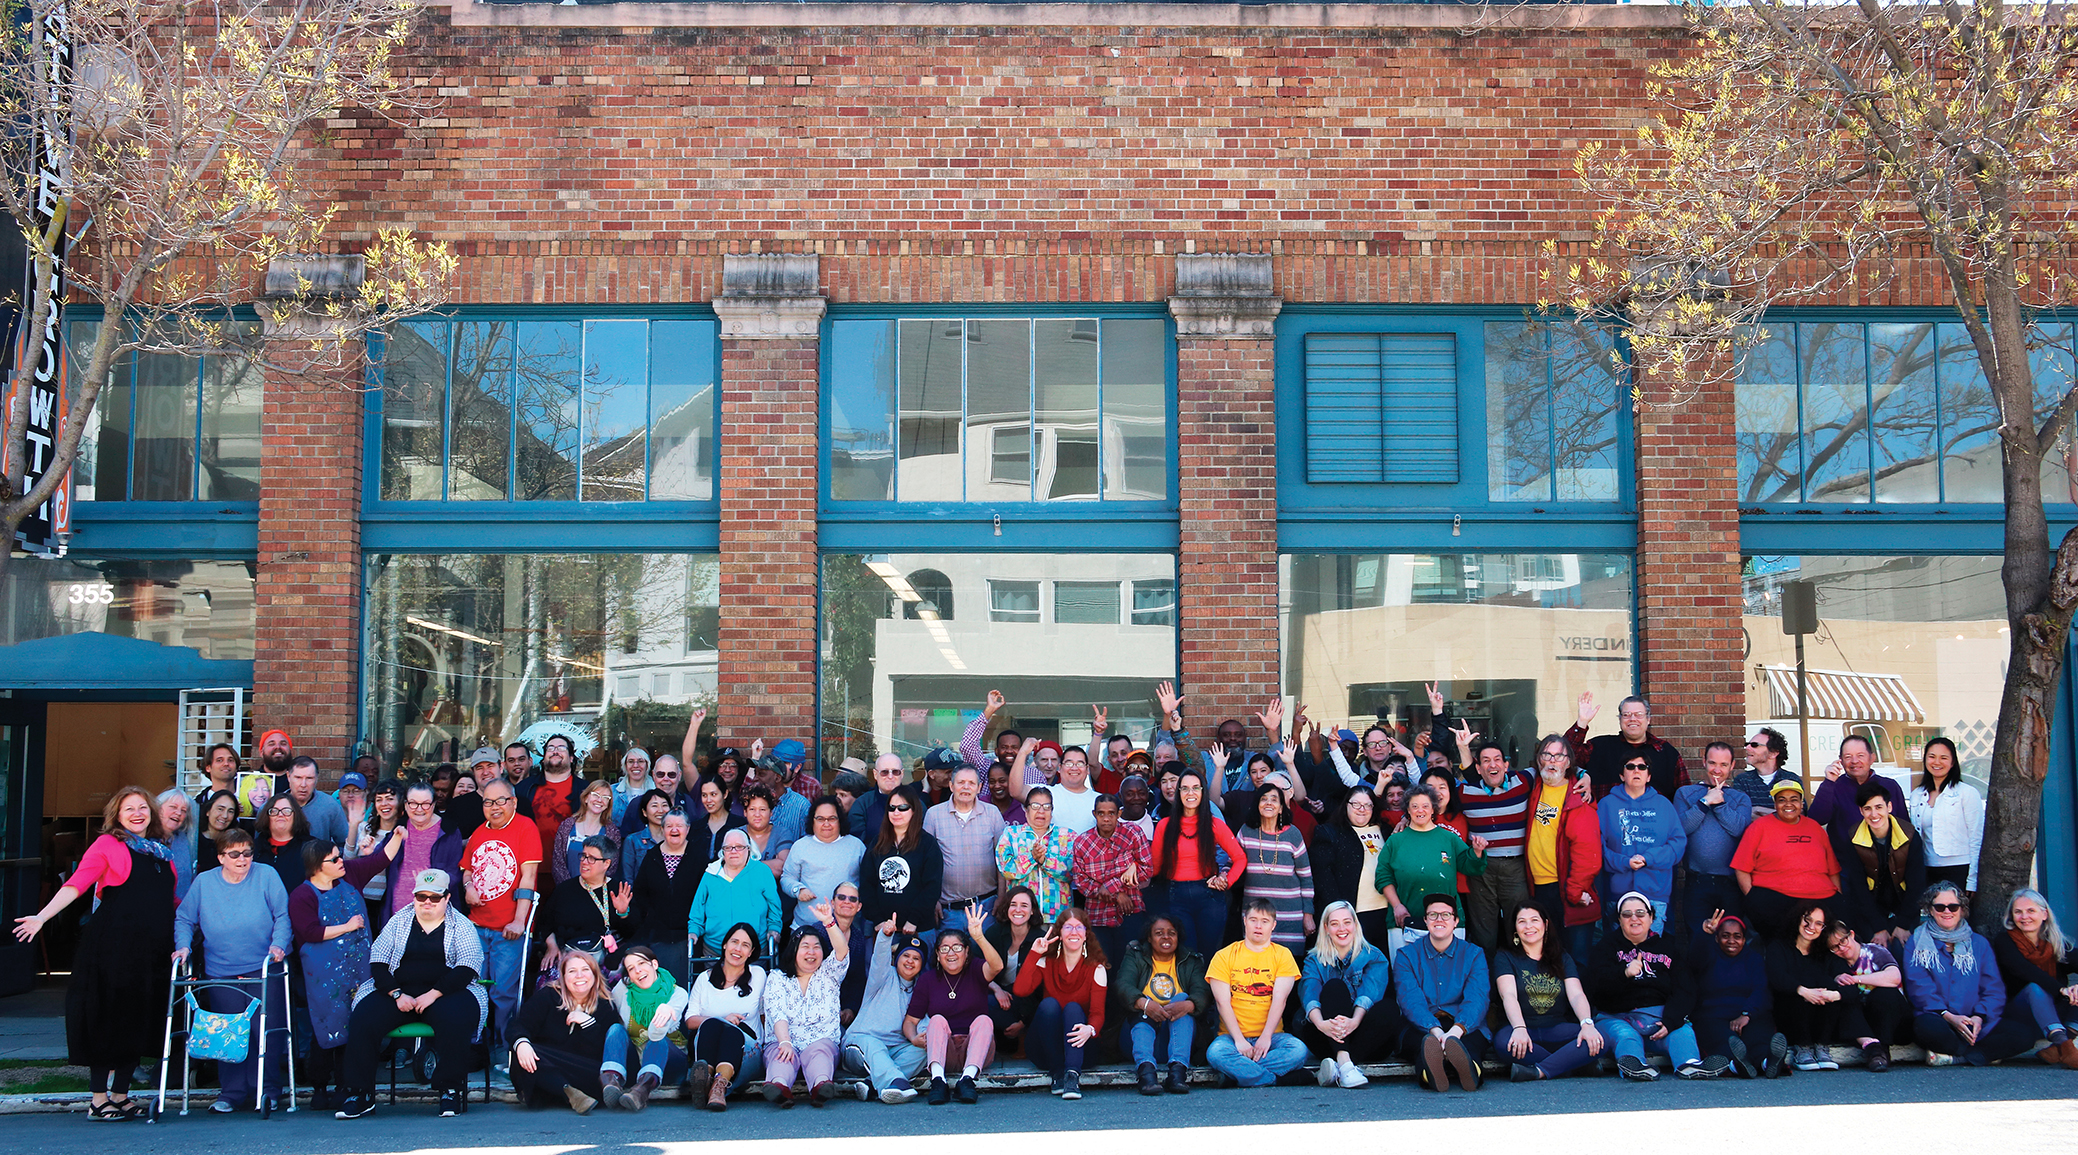 A crowd of eighty to one hundred Creative Growth artists, poets, and staff pose for a group photo in front of the Creative Growth Art Center, a brick building with large windows. Everyone is standing except for the front row of people seated. Many people are smiling, waving, and holding up peace signs.